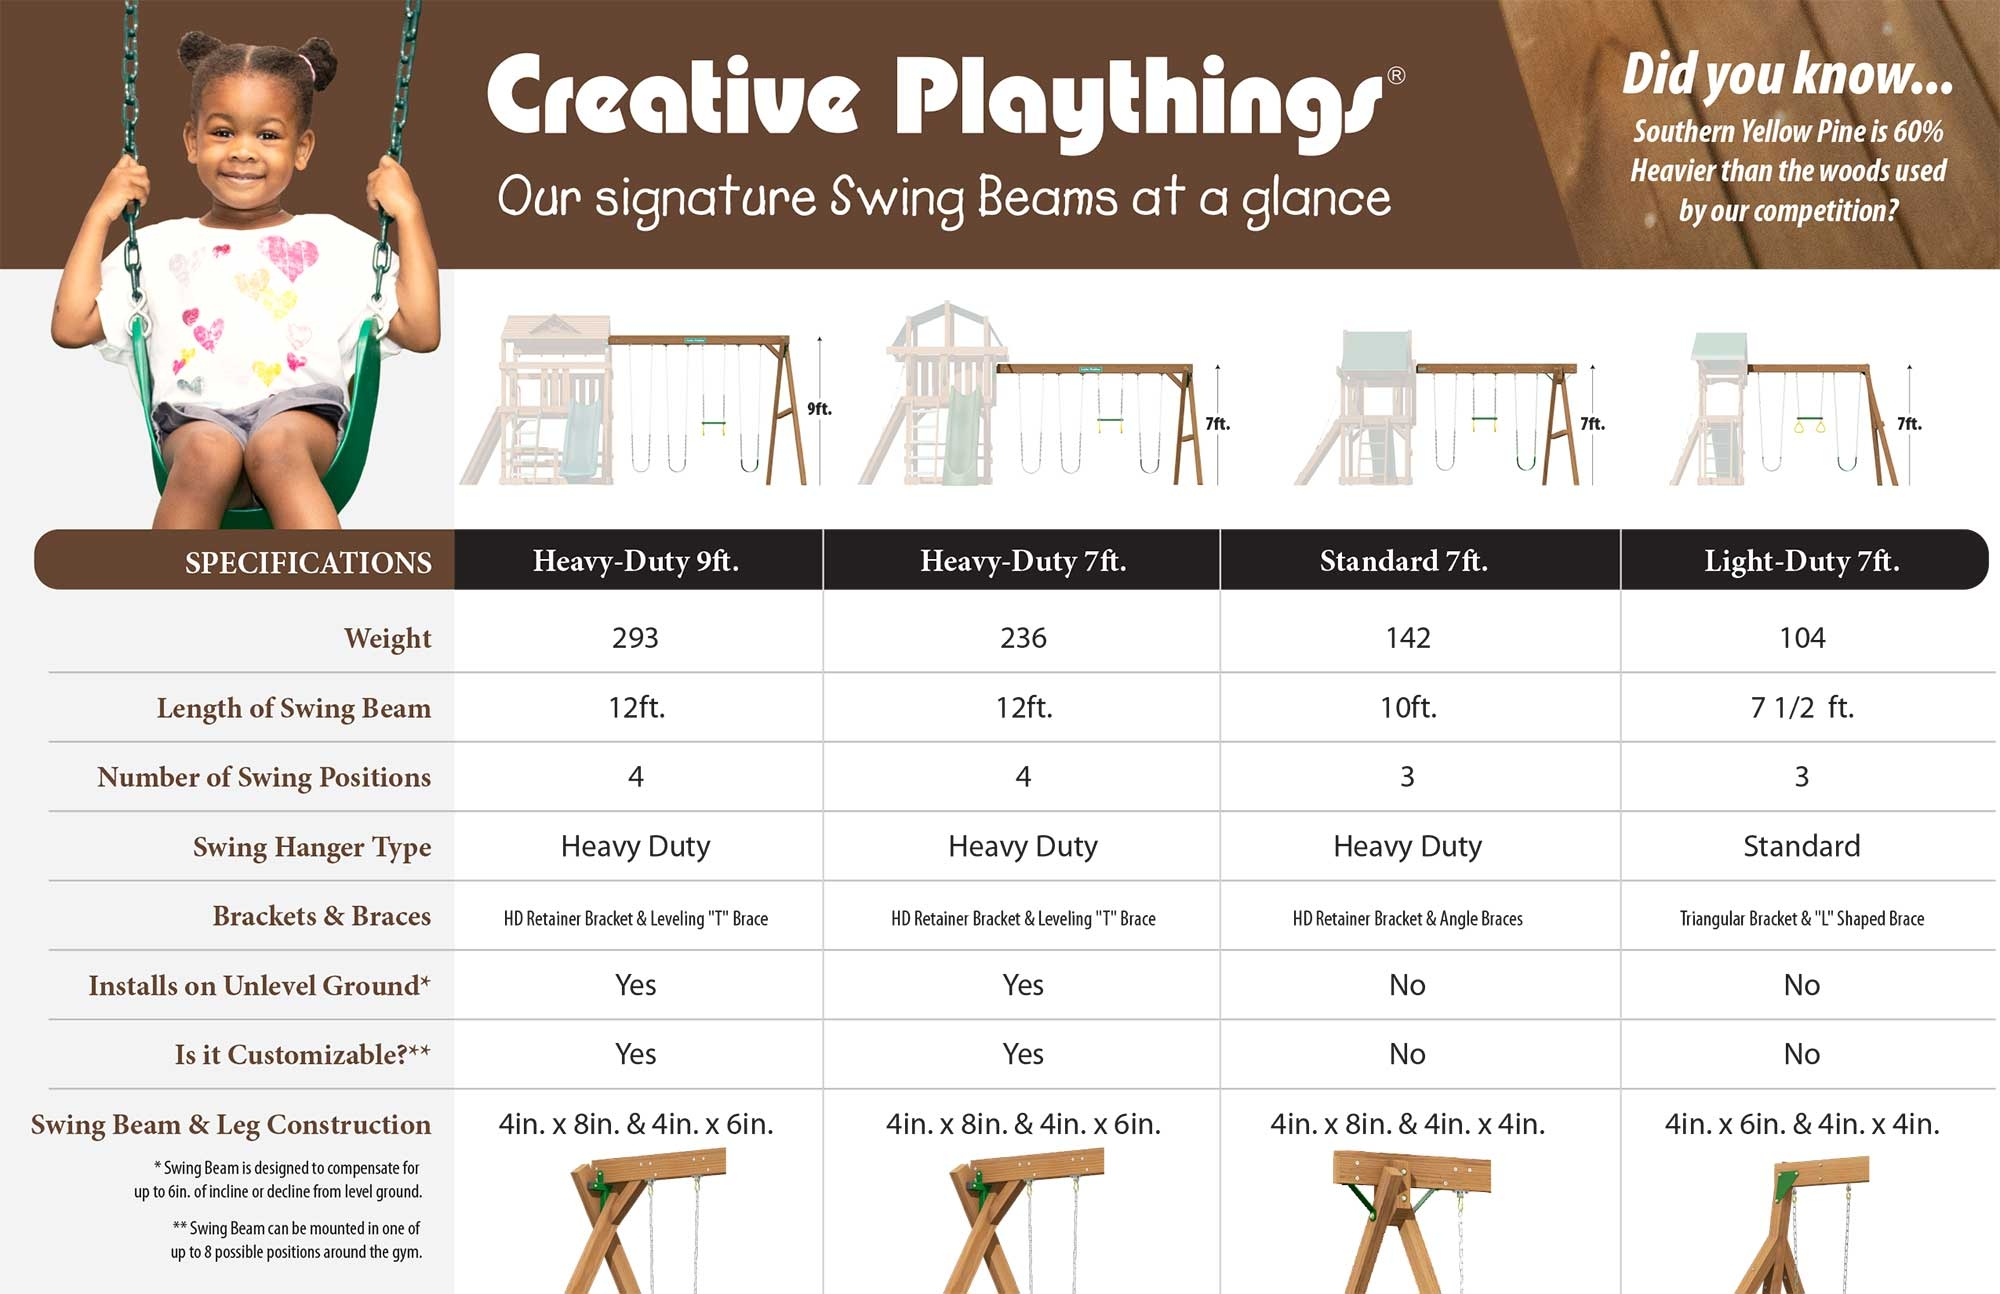 Our signature Swing Beams at a glance